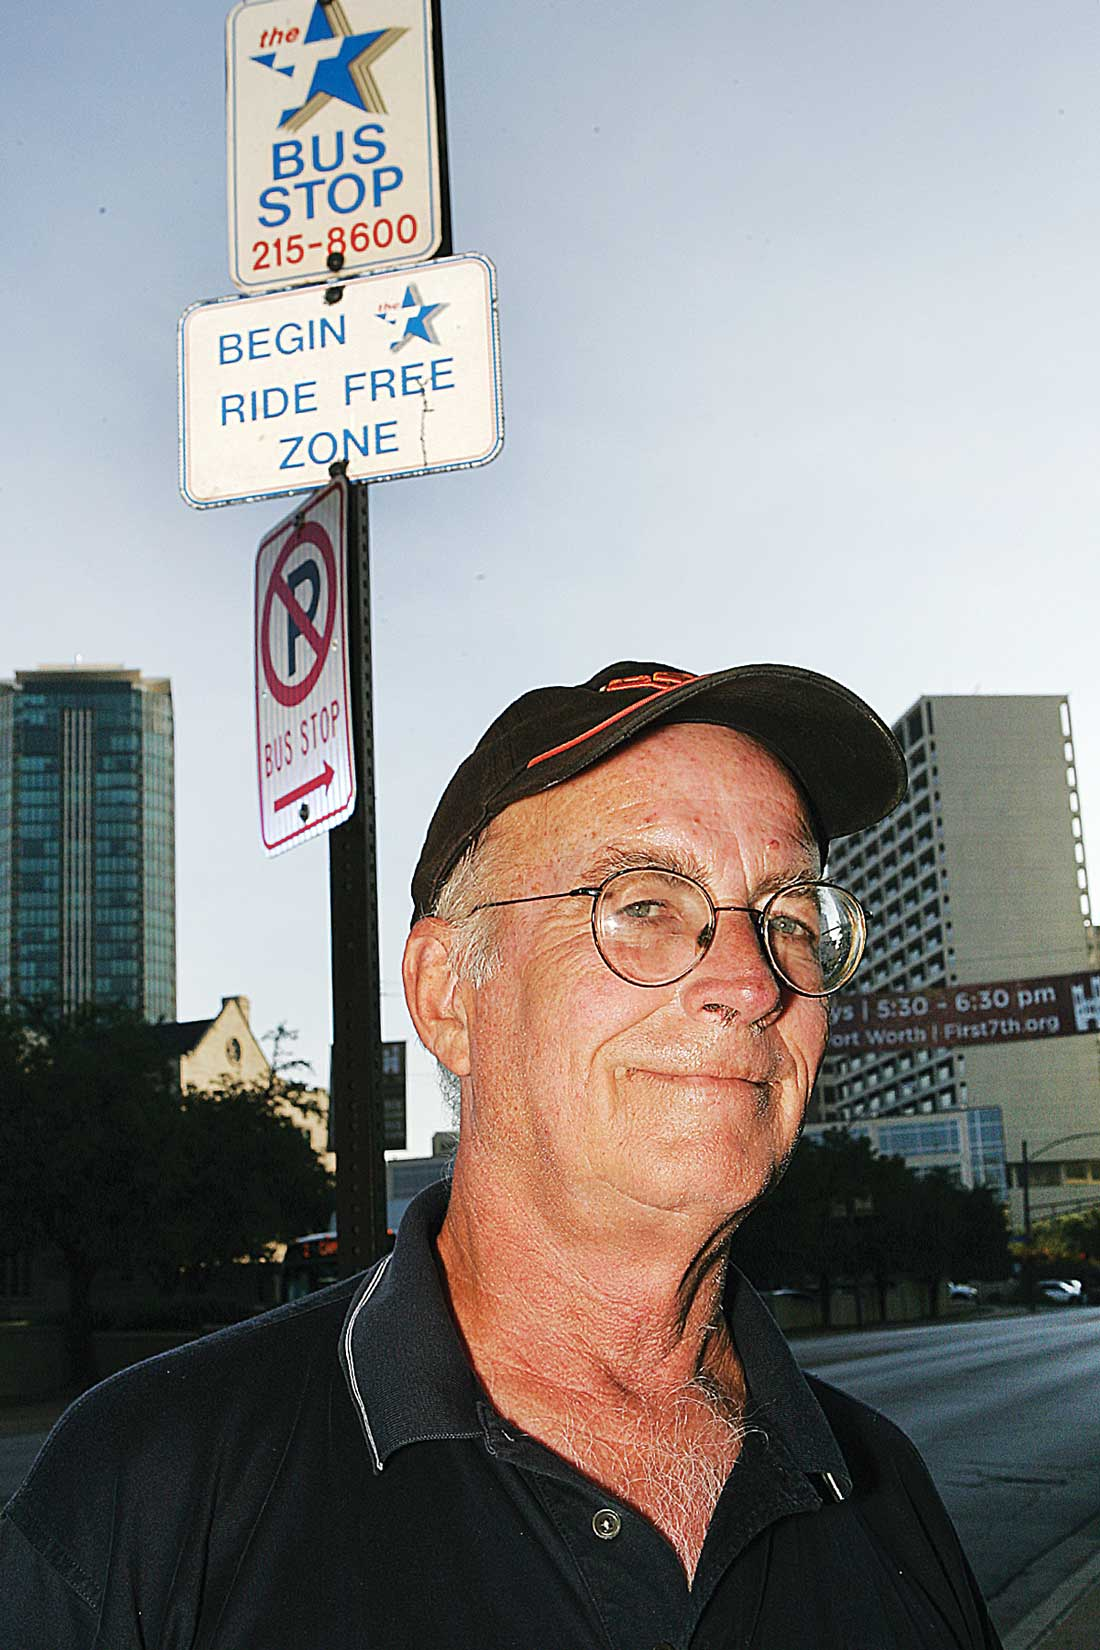 """Friese: """"Most of the people I know who were homeless treated those bus passes as gold."""""""